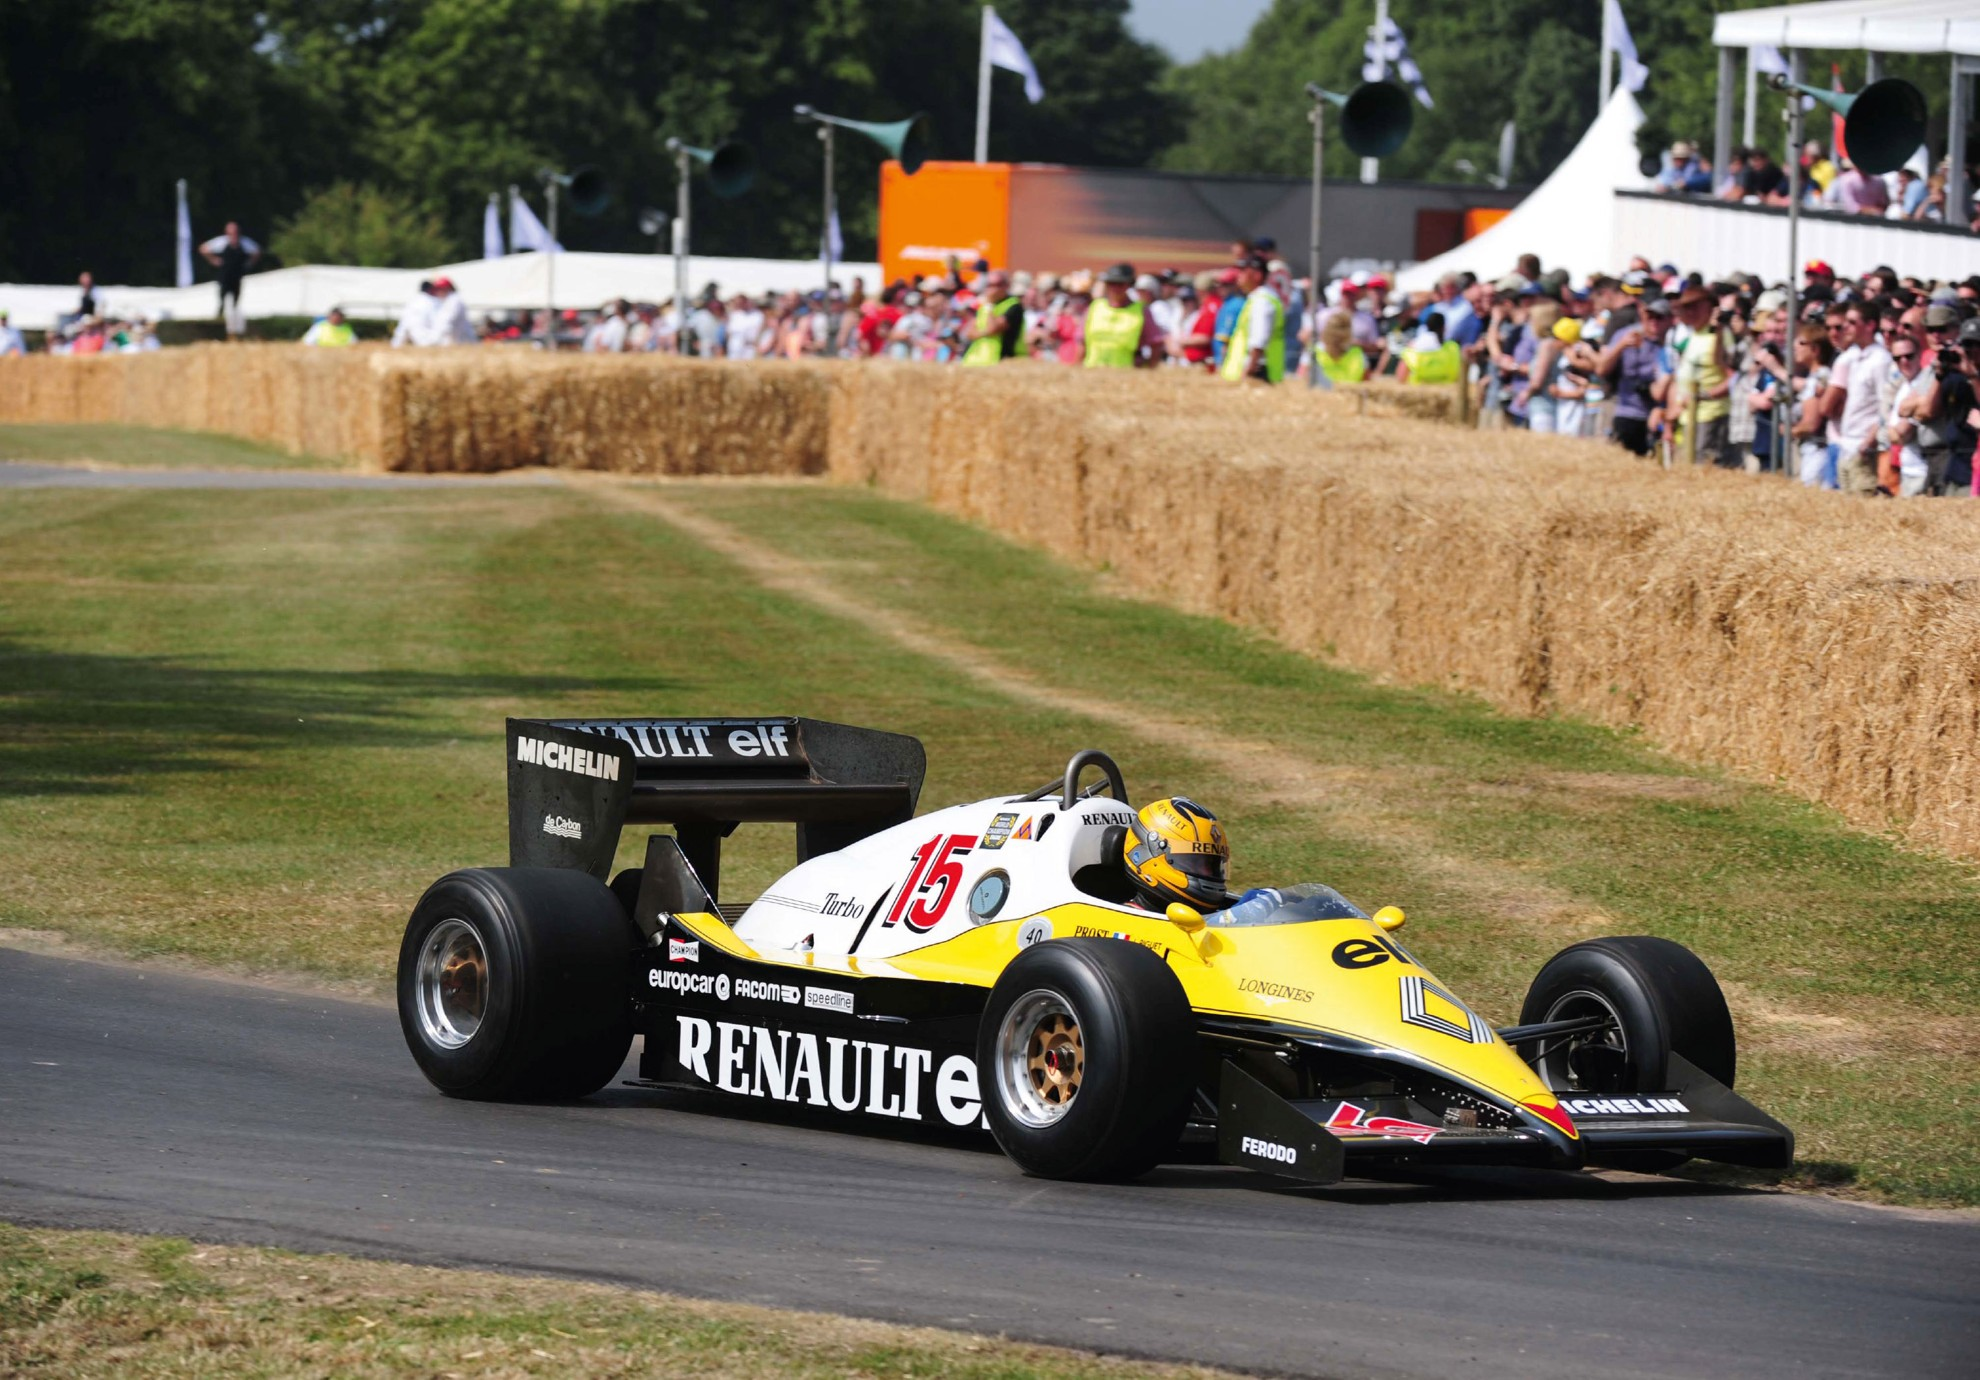 1983_Renault_RE40_Formula_1_car